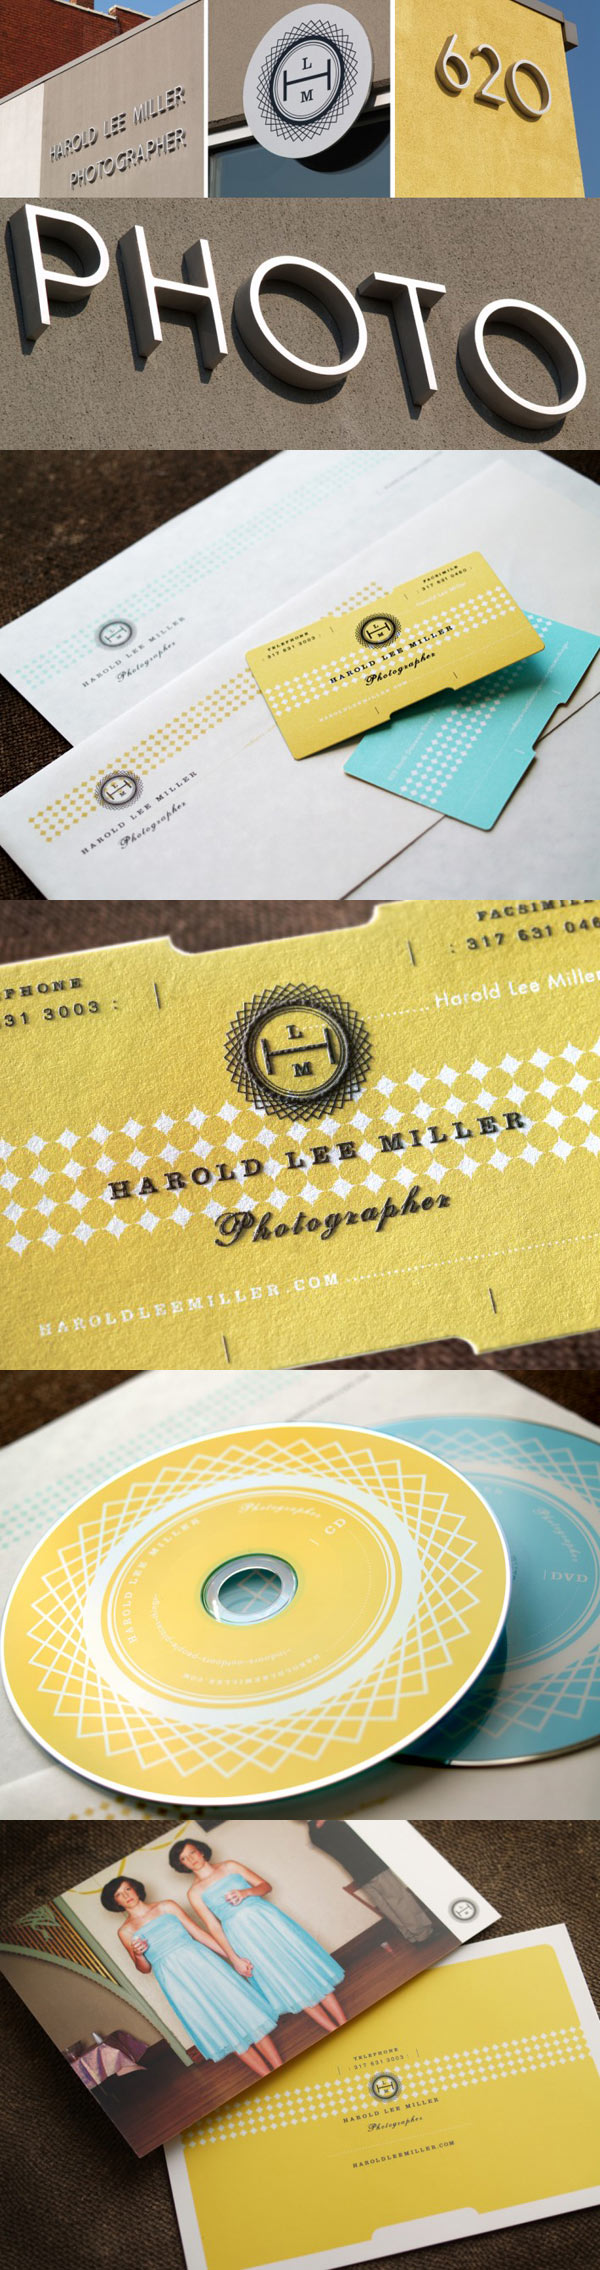 Harold Lee Miller's Die Cut Business Card